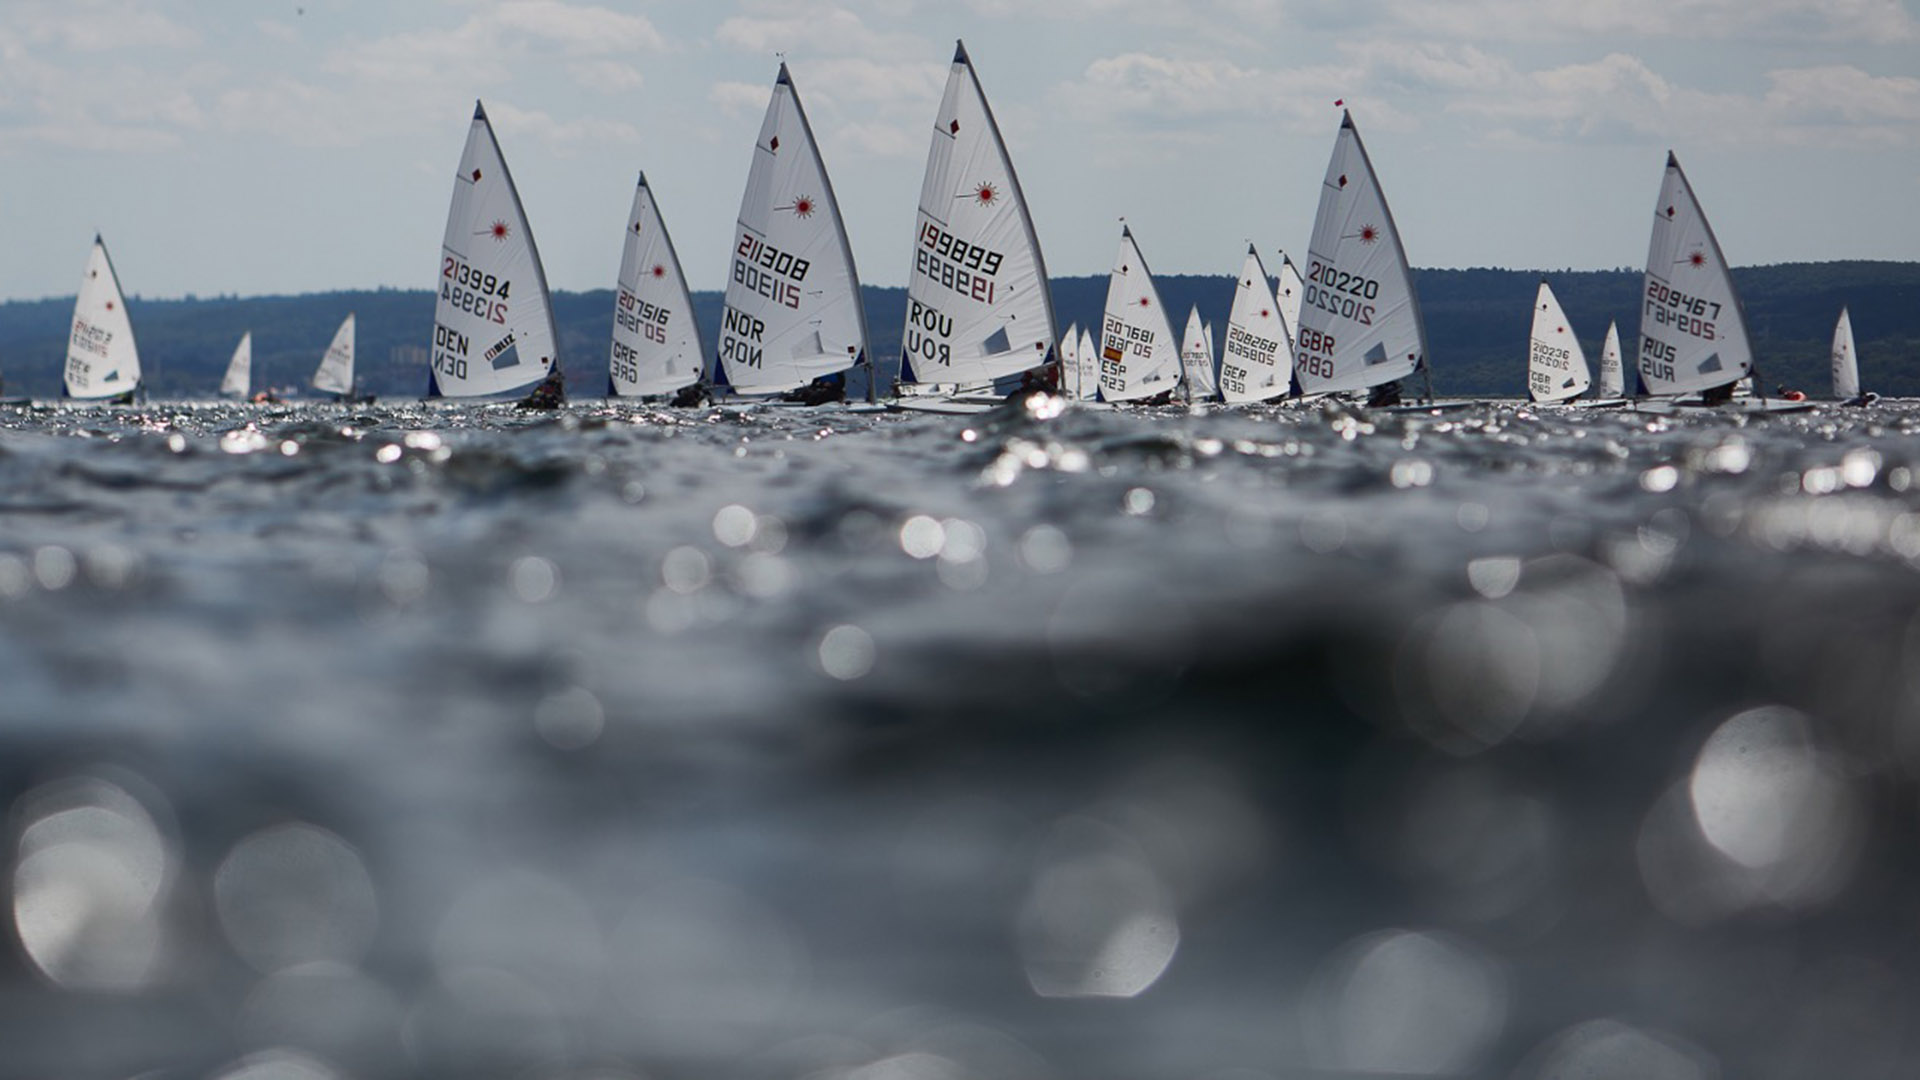 2018 Laser Standard Men's & Radial Women's Under 21 World Championships